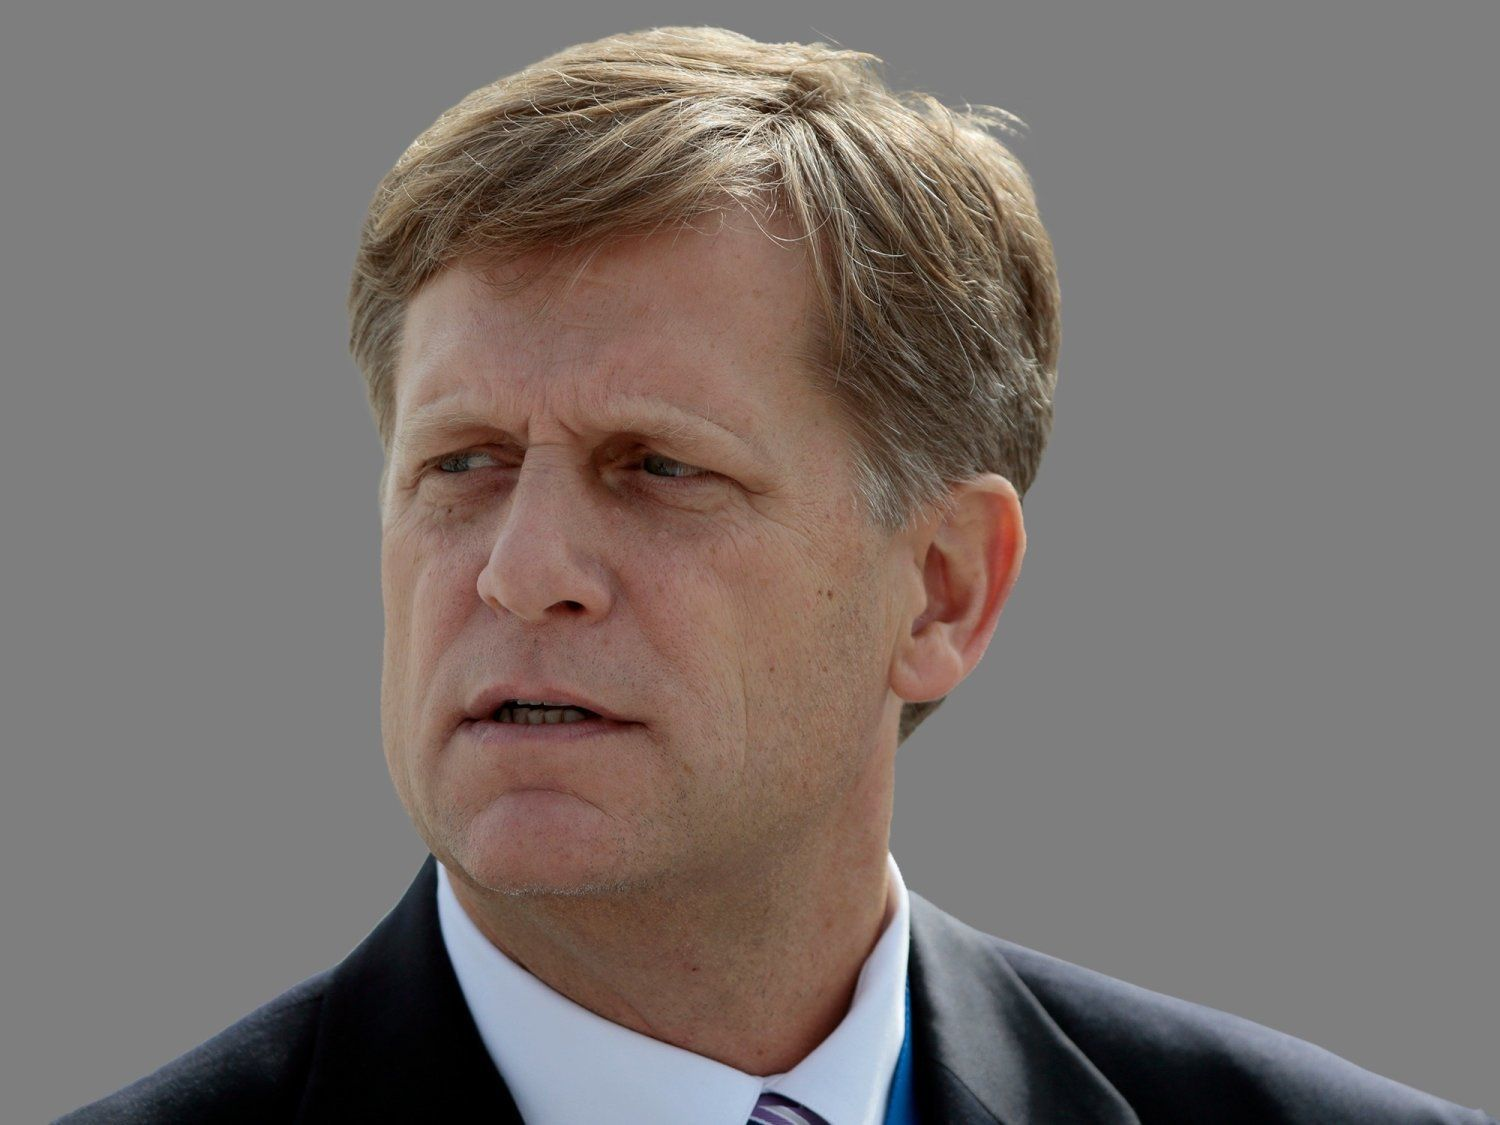 Michael McFaul headshot, former US Ambassador to Russia, graphic element on gray